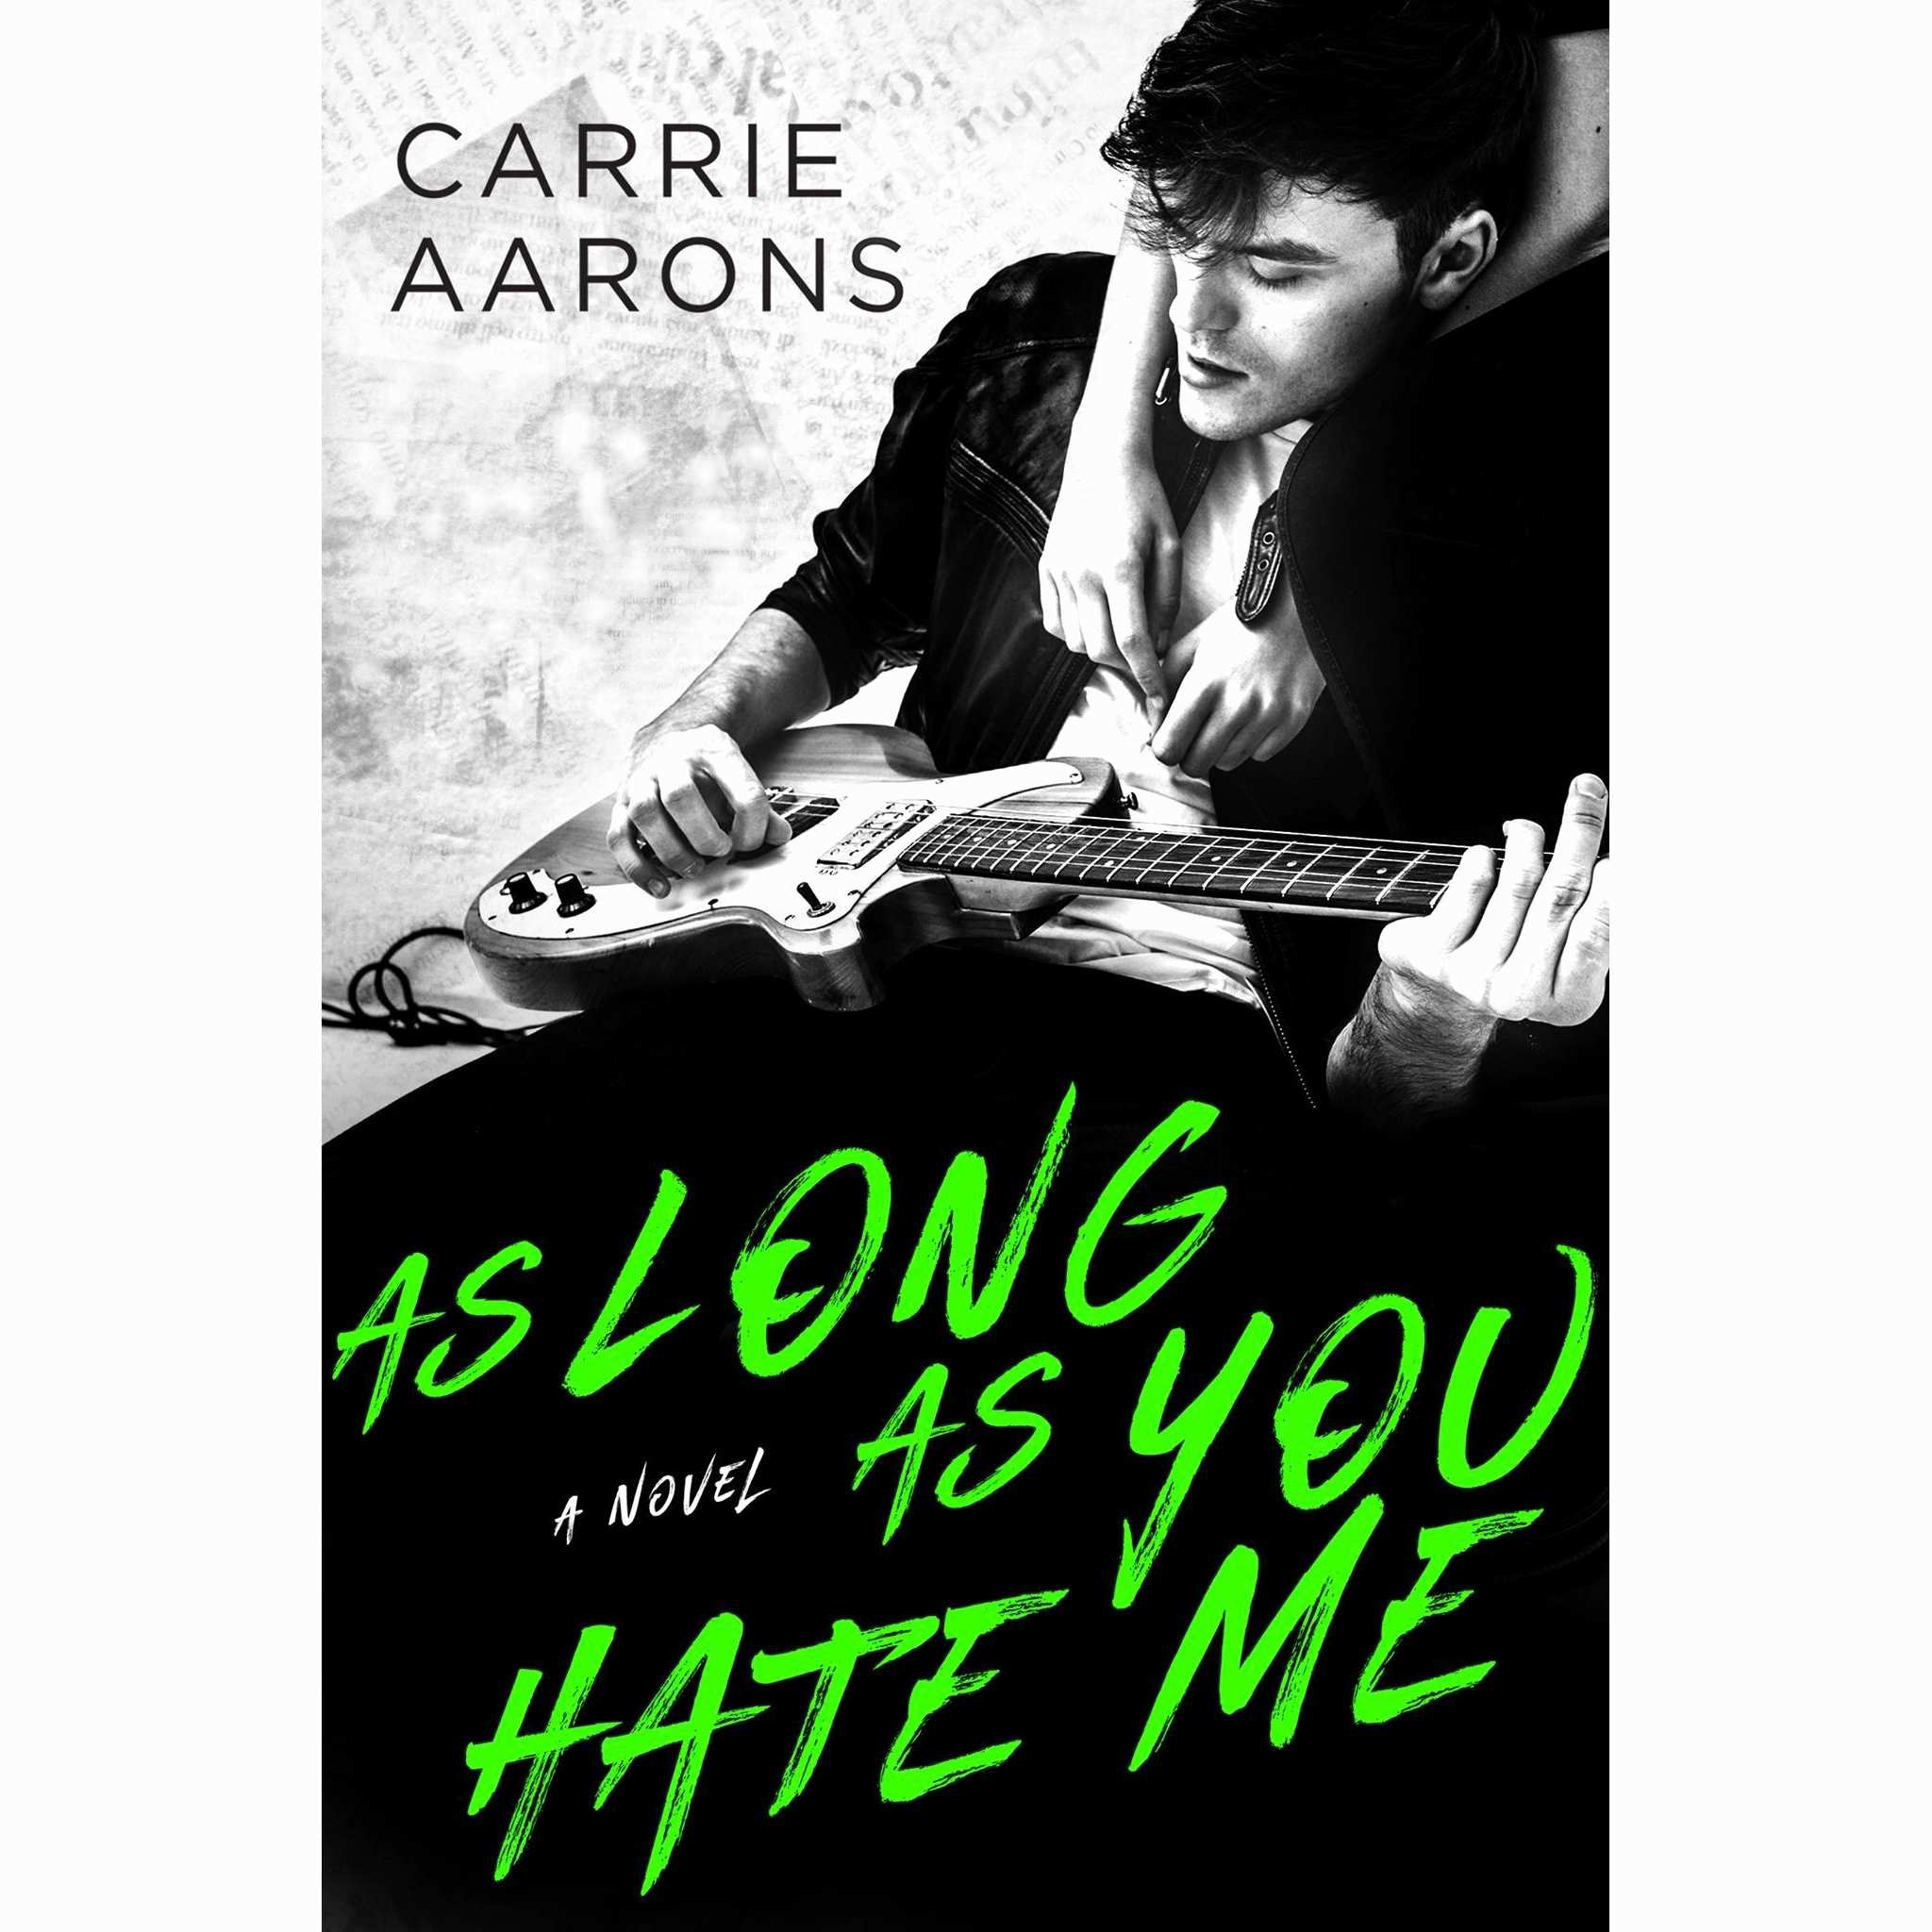 Aarons Contract Agreement Best Of as long as You Hate Me by Carrie